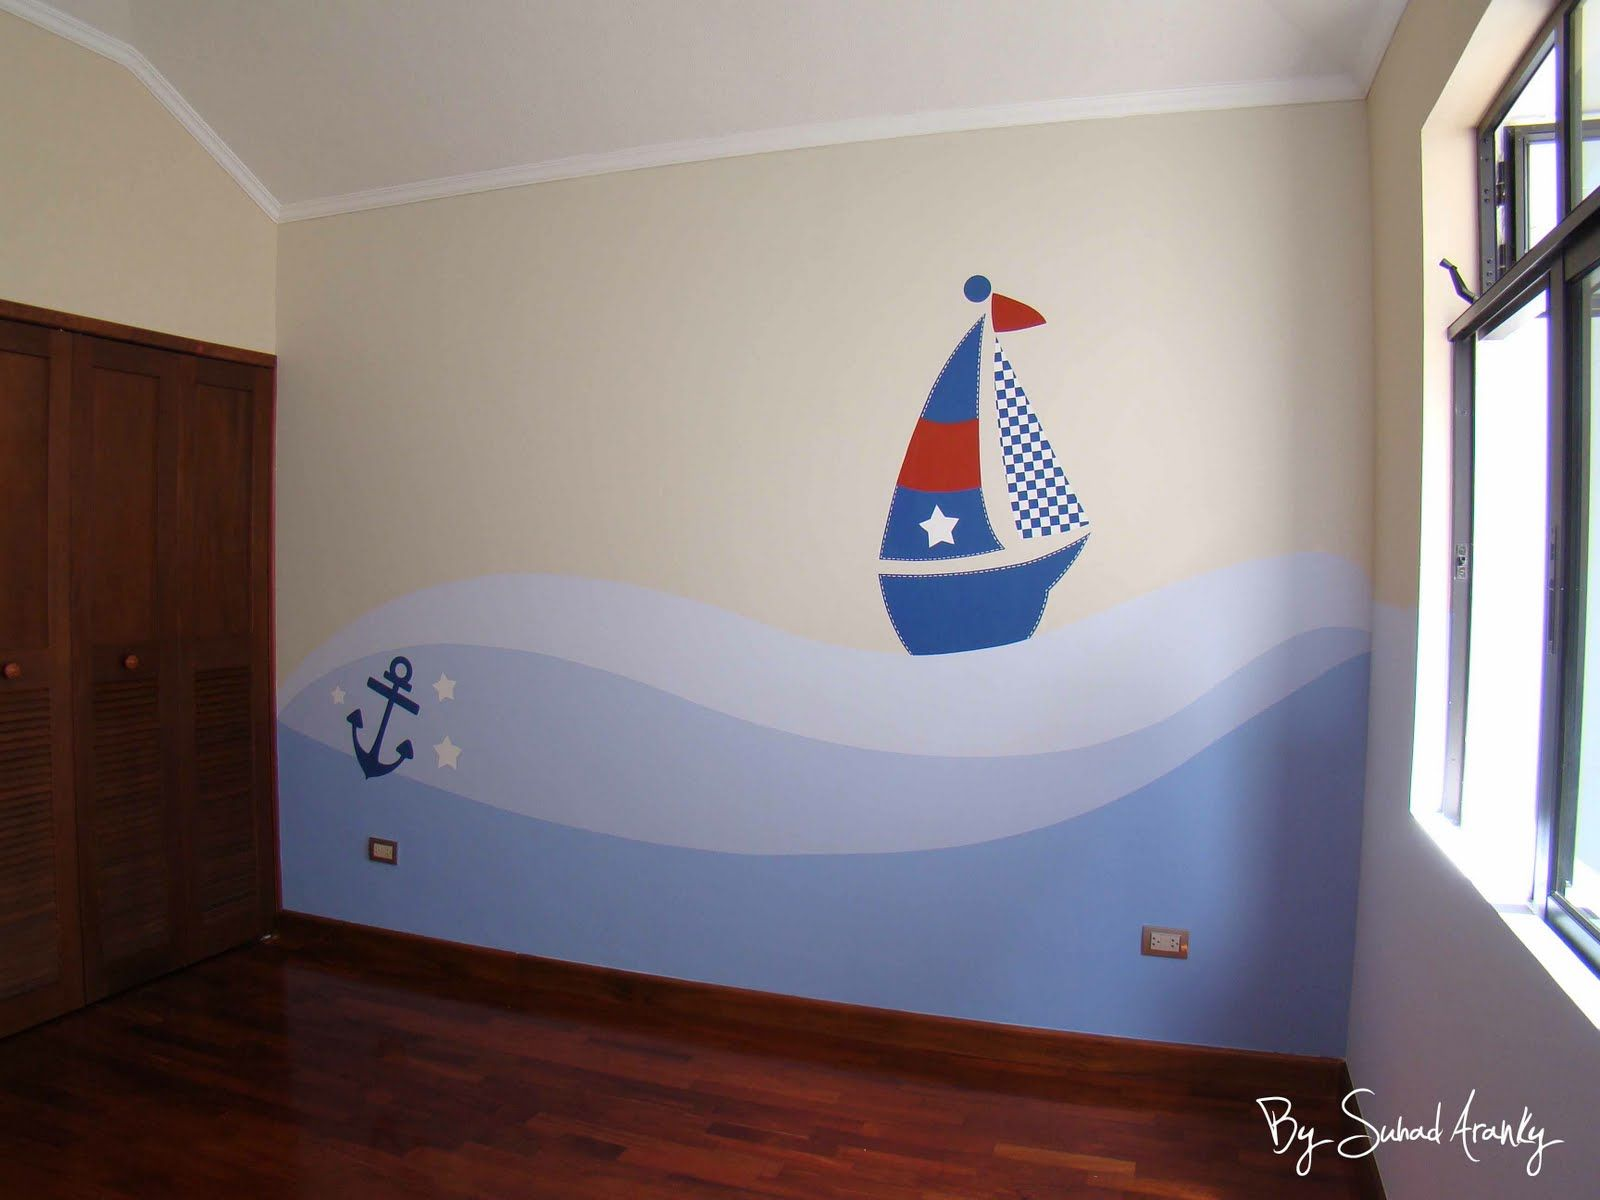 murales en dormitorios cuarto ni o barcos deco infantil pinterest kinderzimmer. Black Bedroom Furniture Sets. Home Design Ideas